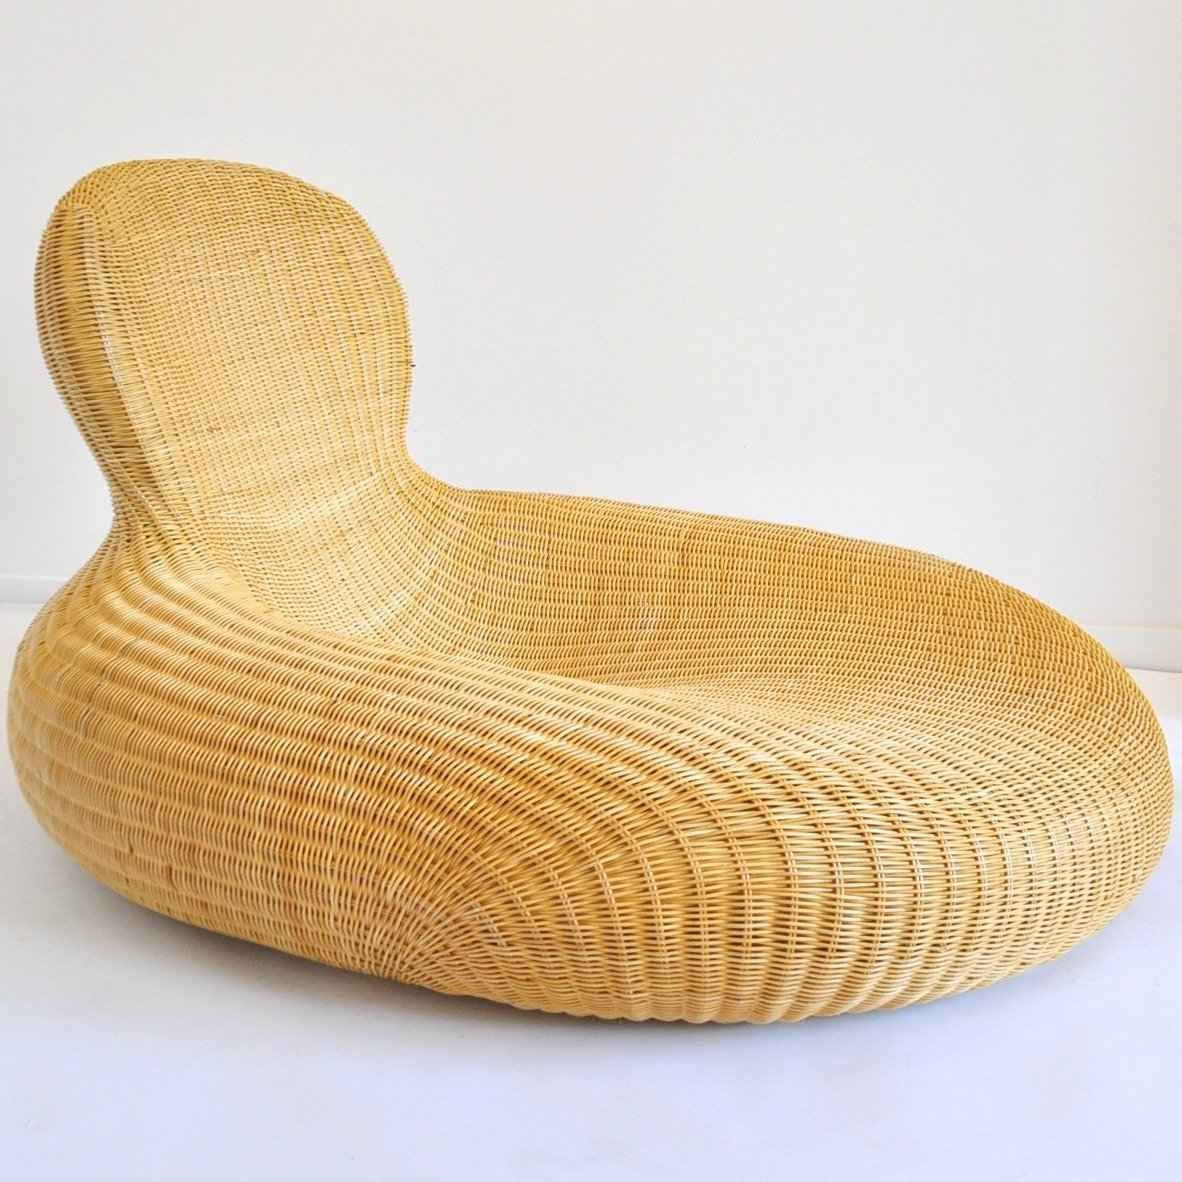 Vintage Ikea Lounge Chair Vintage Storvik Lounge Chair By Carl Öjerstam For Ikea